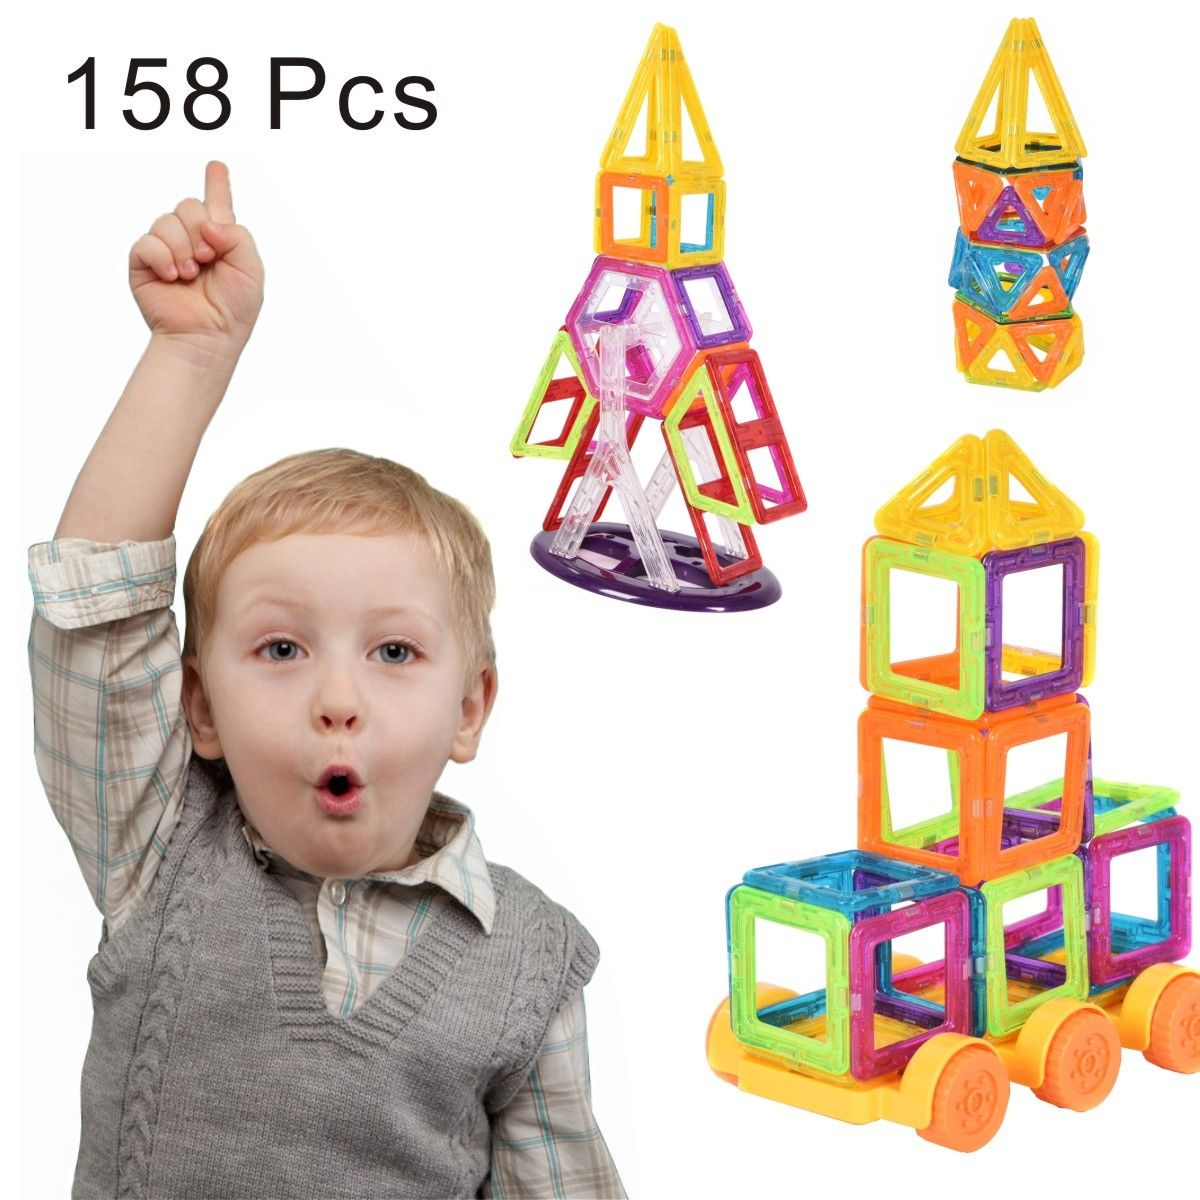 Costway 158 Pcs Magical Magnet Building Block Educational Toy For Kids Colorful Gift Set by Costway